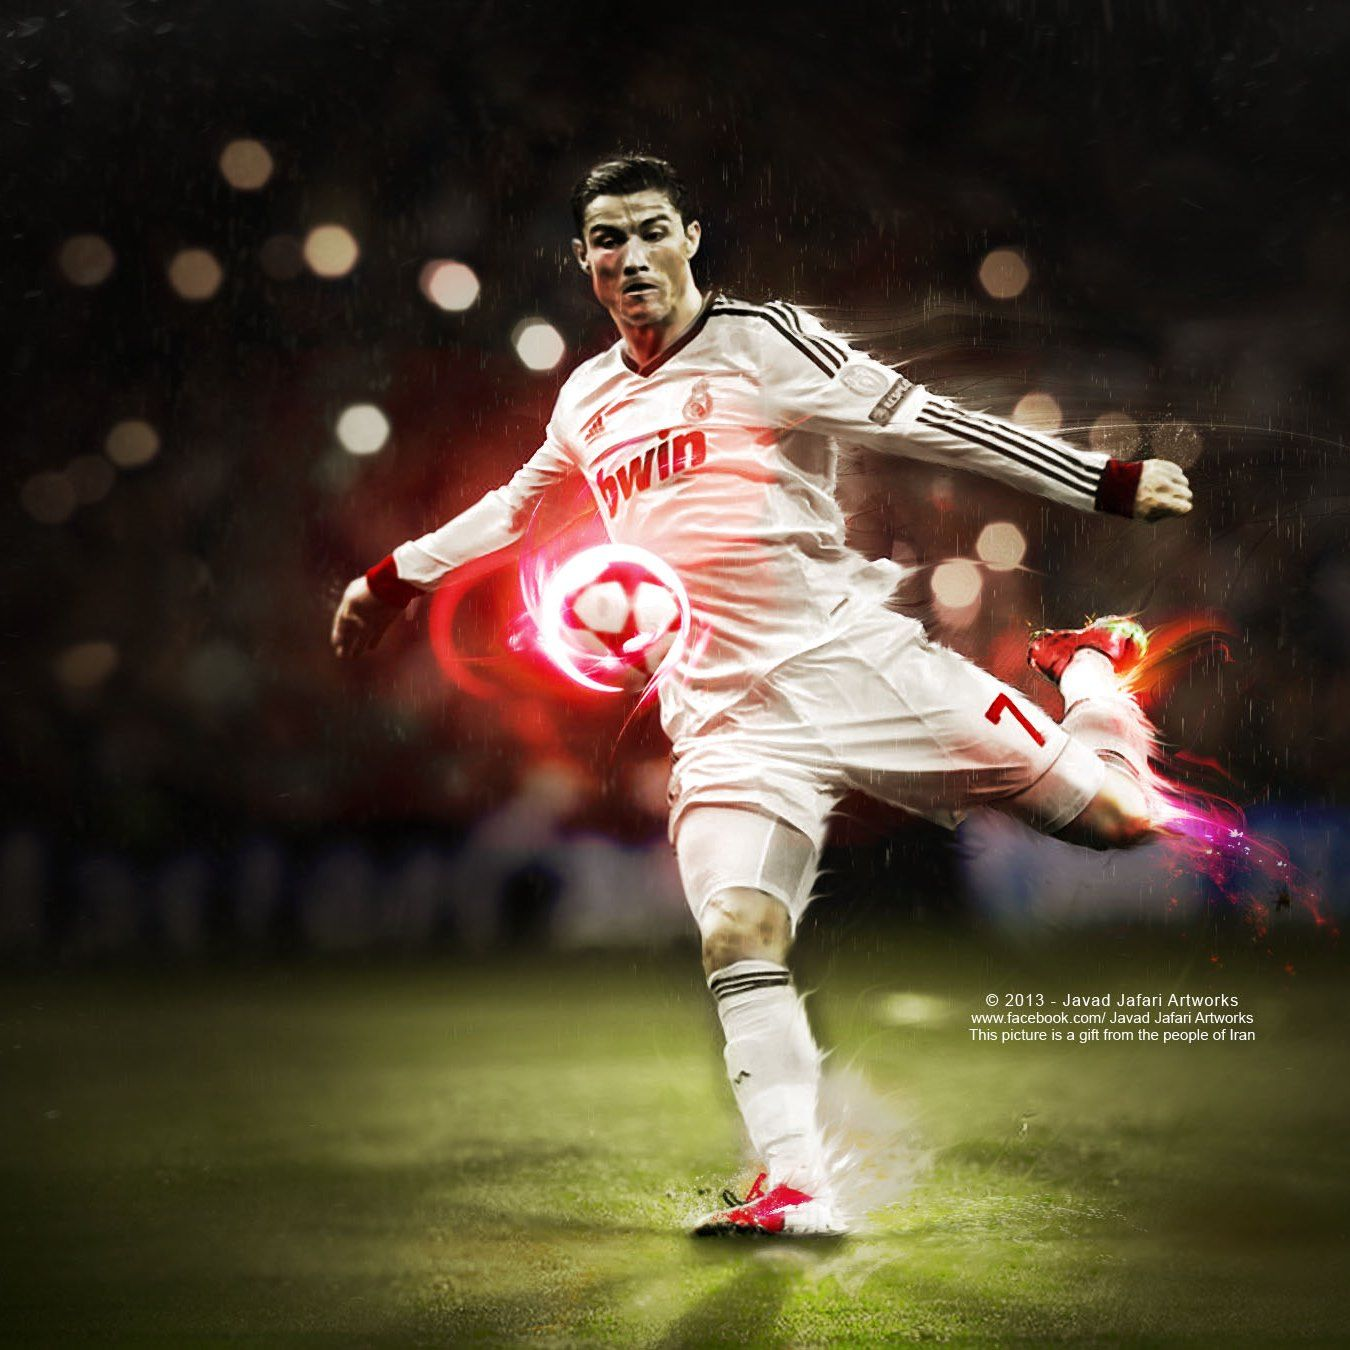 Art Of Cristiano Ronaldo Fans #wallpaper #sport #soccer